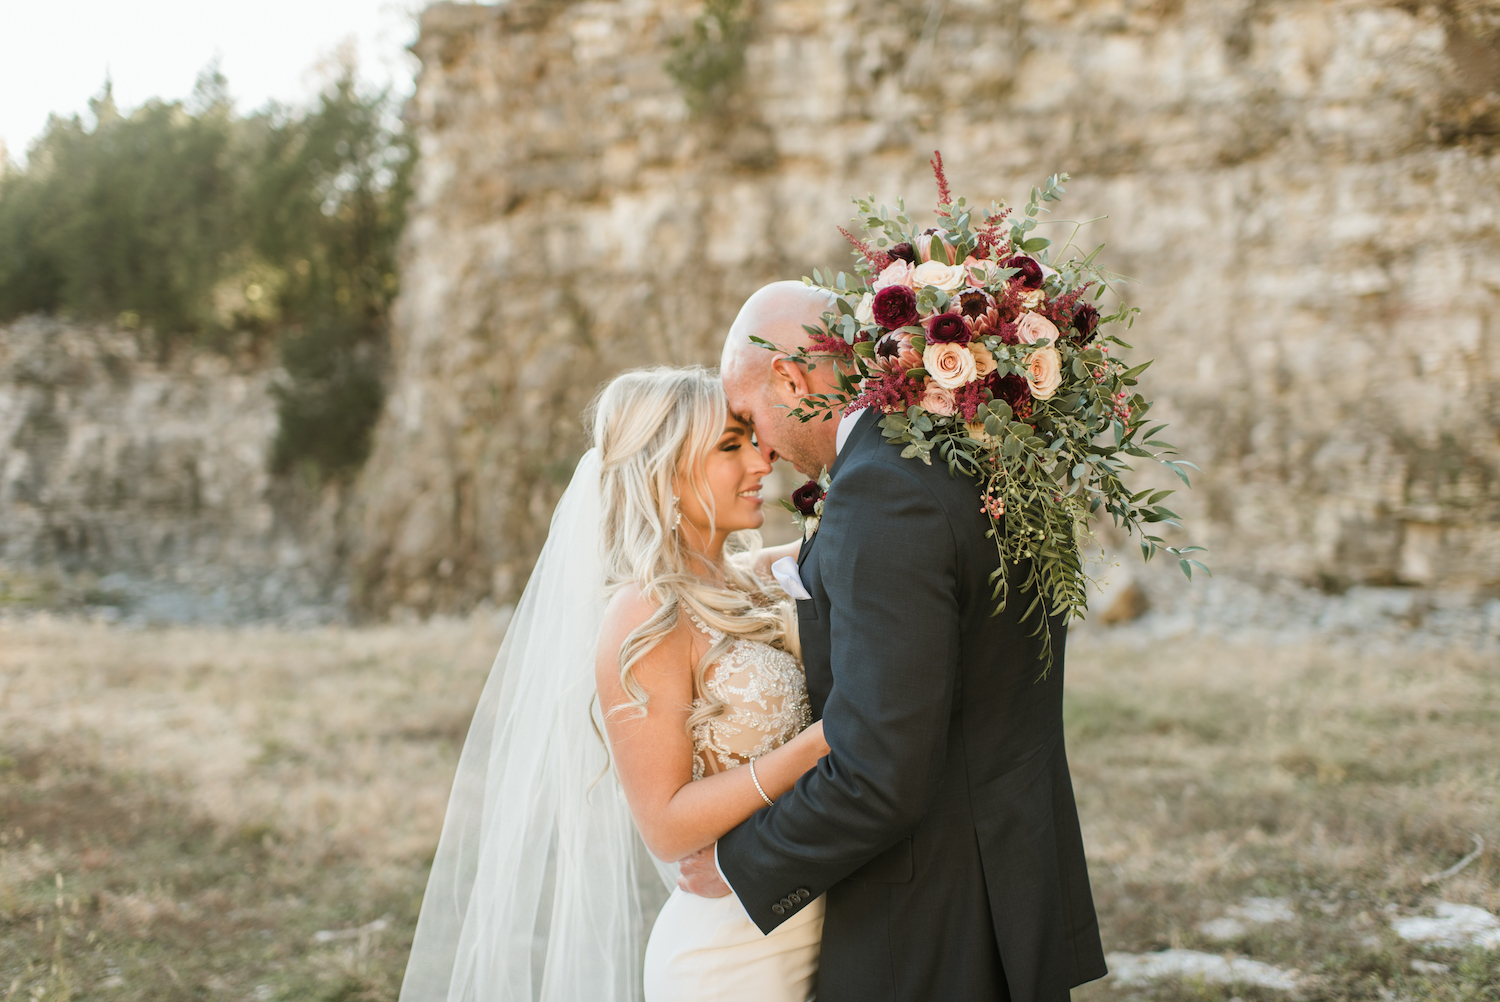 Upscale Marble Graystone Quarry Wedding featured on Nashville Bride Guide